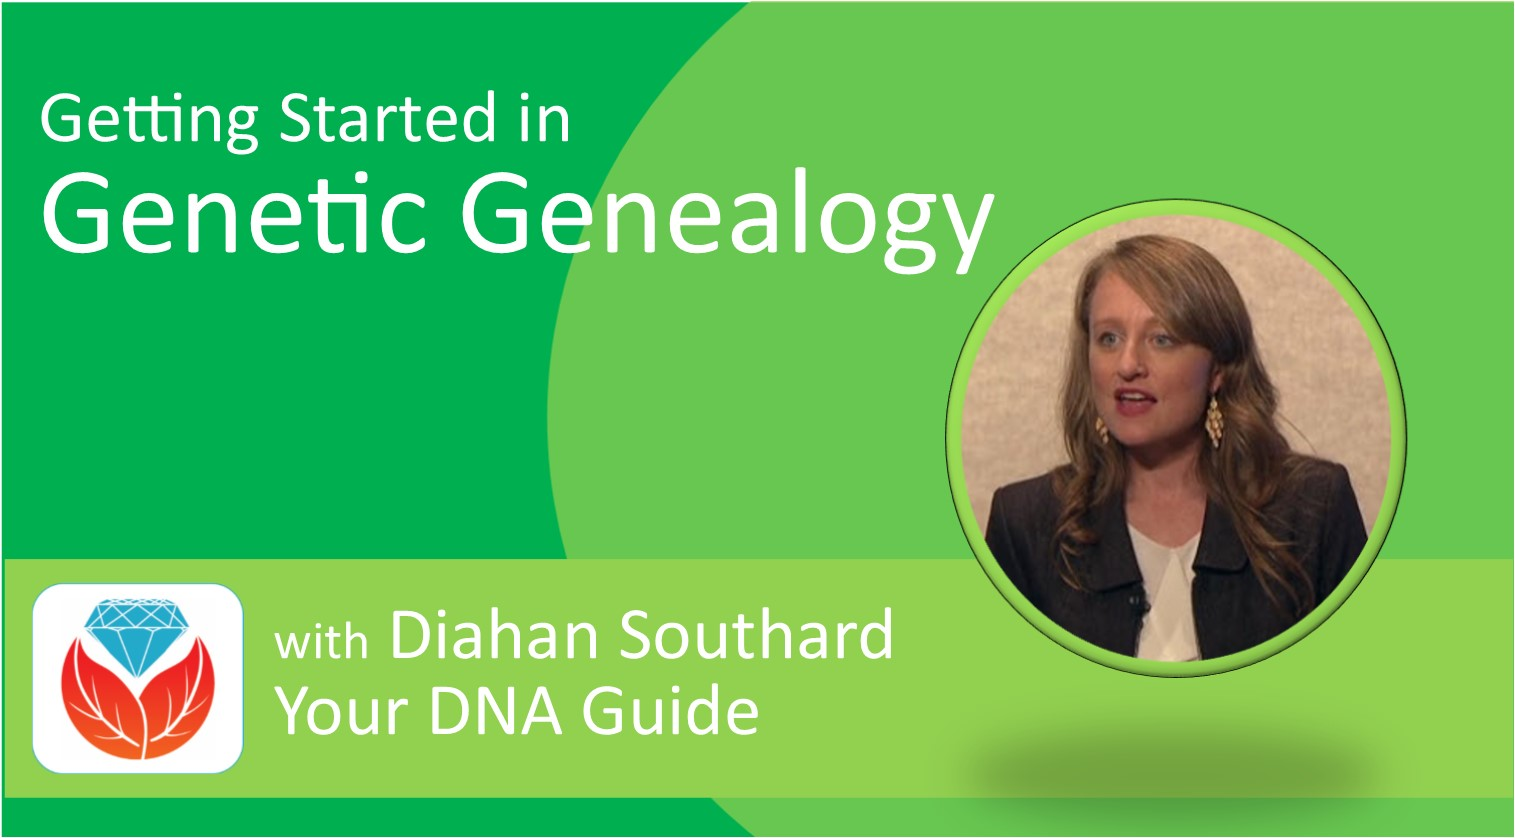 New Premium Video Getting Started with Genetic Genealogy